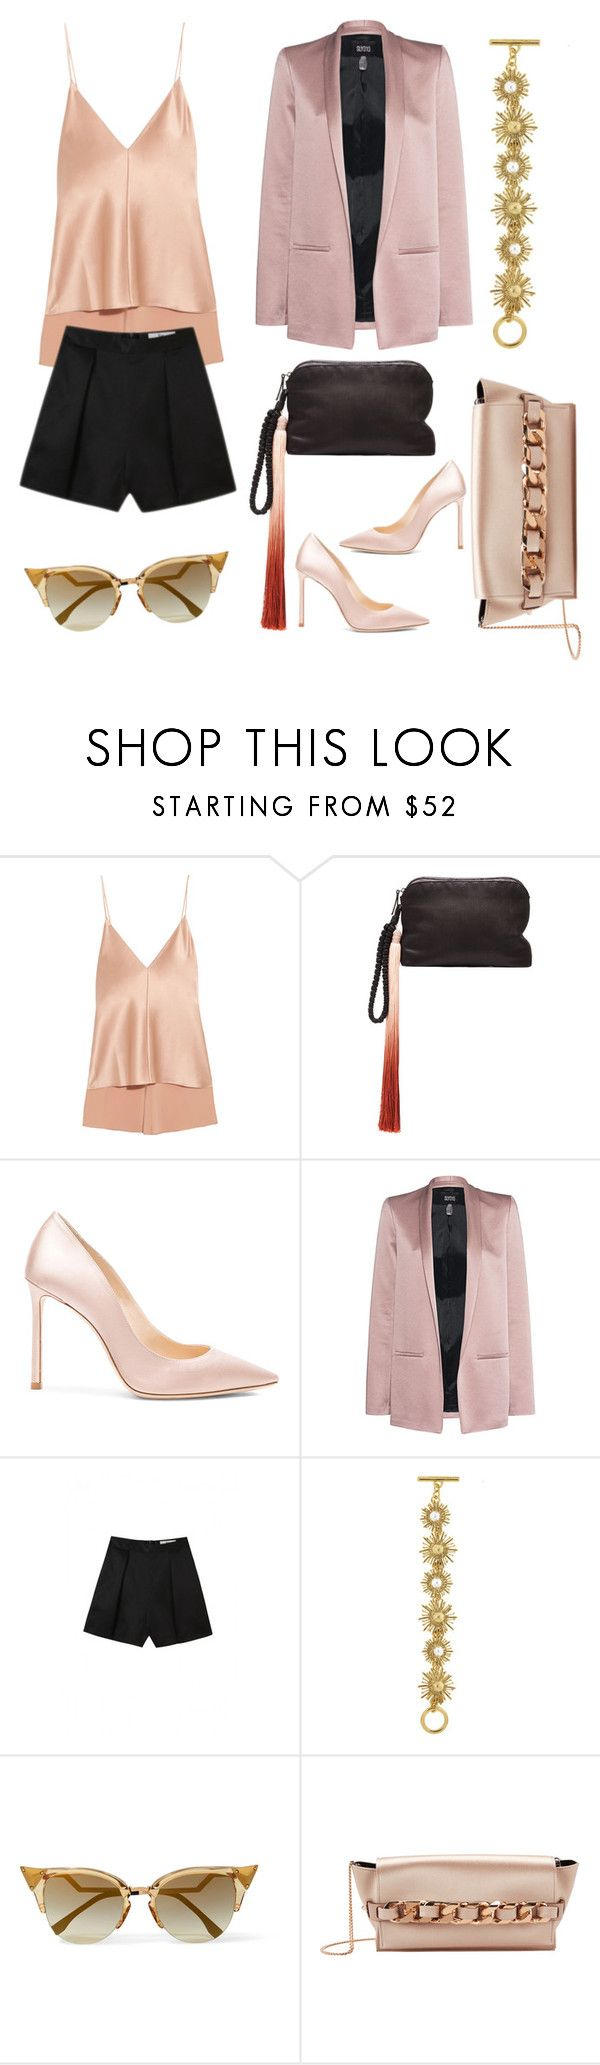 """Full"" by na-ty-1 ❤ liked on Polyvore featuring Juan Carlos Obando, The Row, Jimmy Choo, SLY 010, Oscar de la Renta, Fendi and Elena Ghisellini"